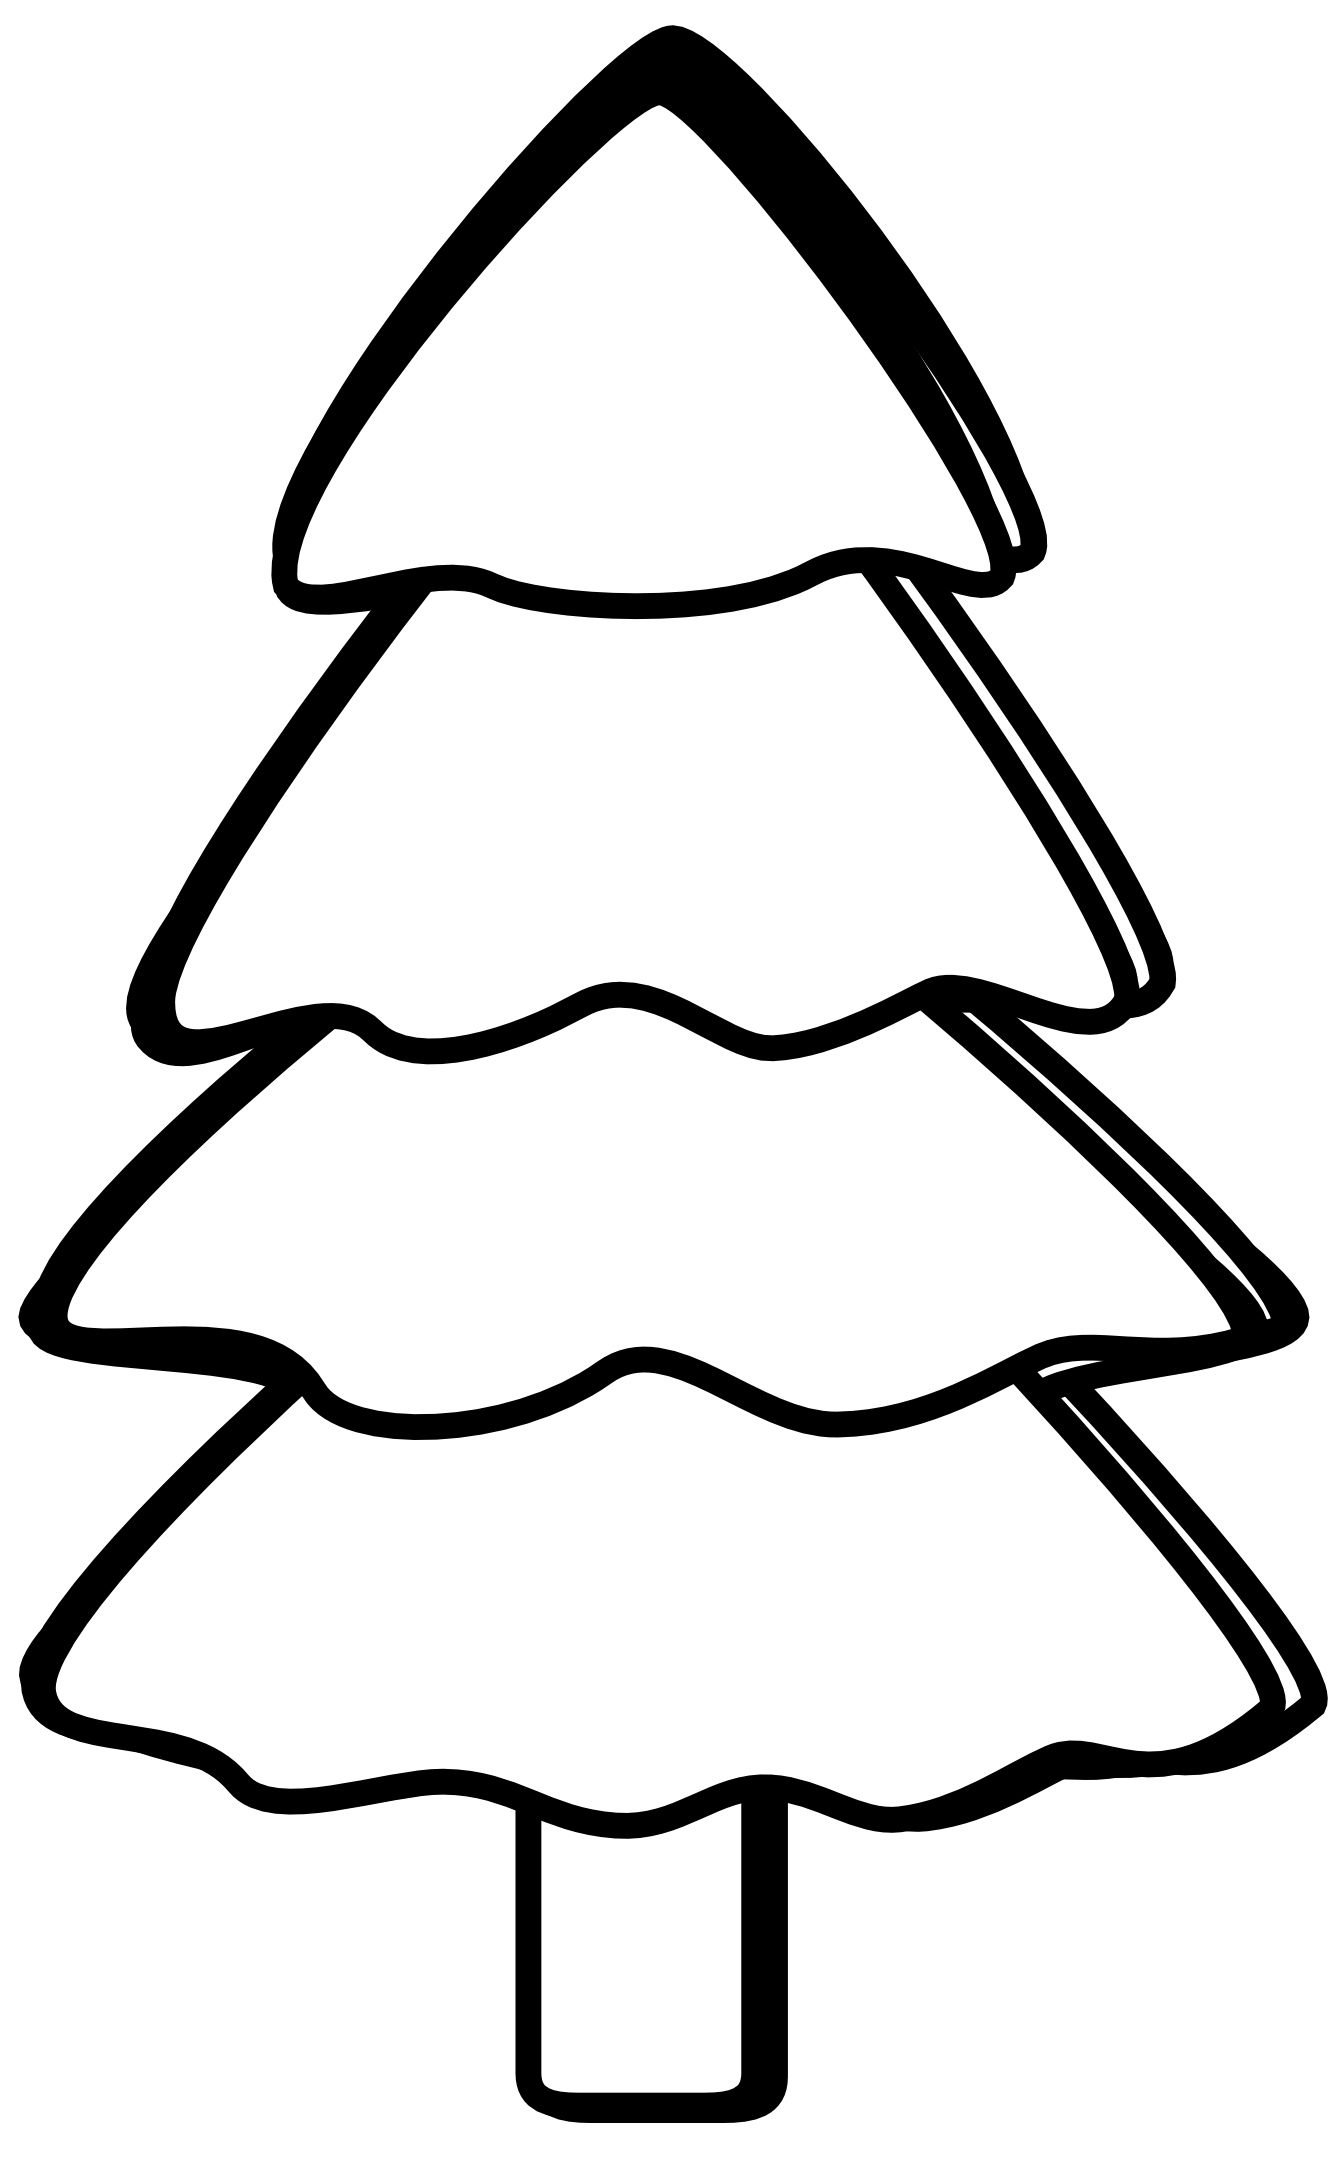 Apple Tree Clipart Black And White Clipart Panda